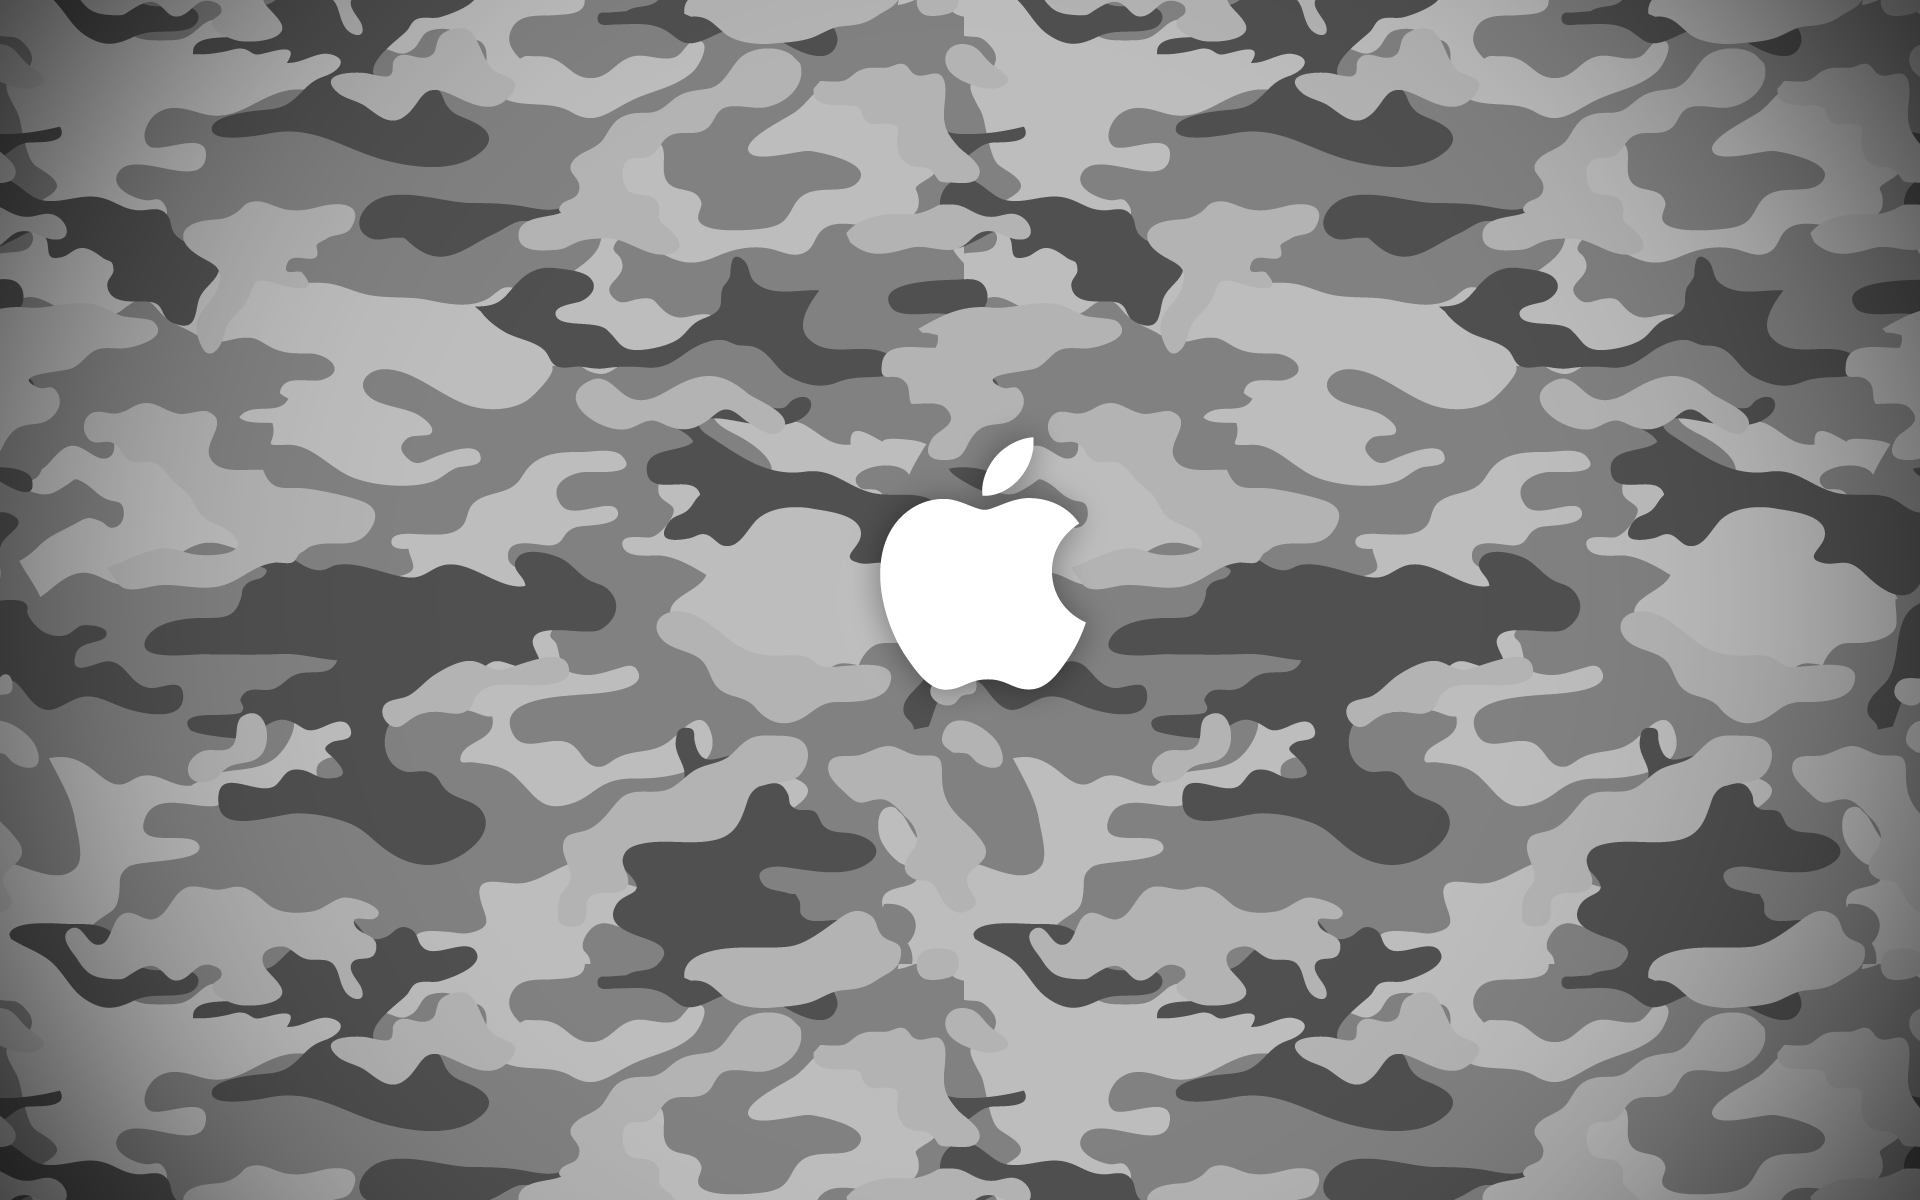 1920x1200 28+ Free Camouflage HD and Desktop Backgrounds   Backgrounds ...